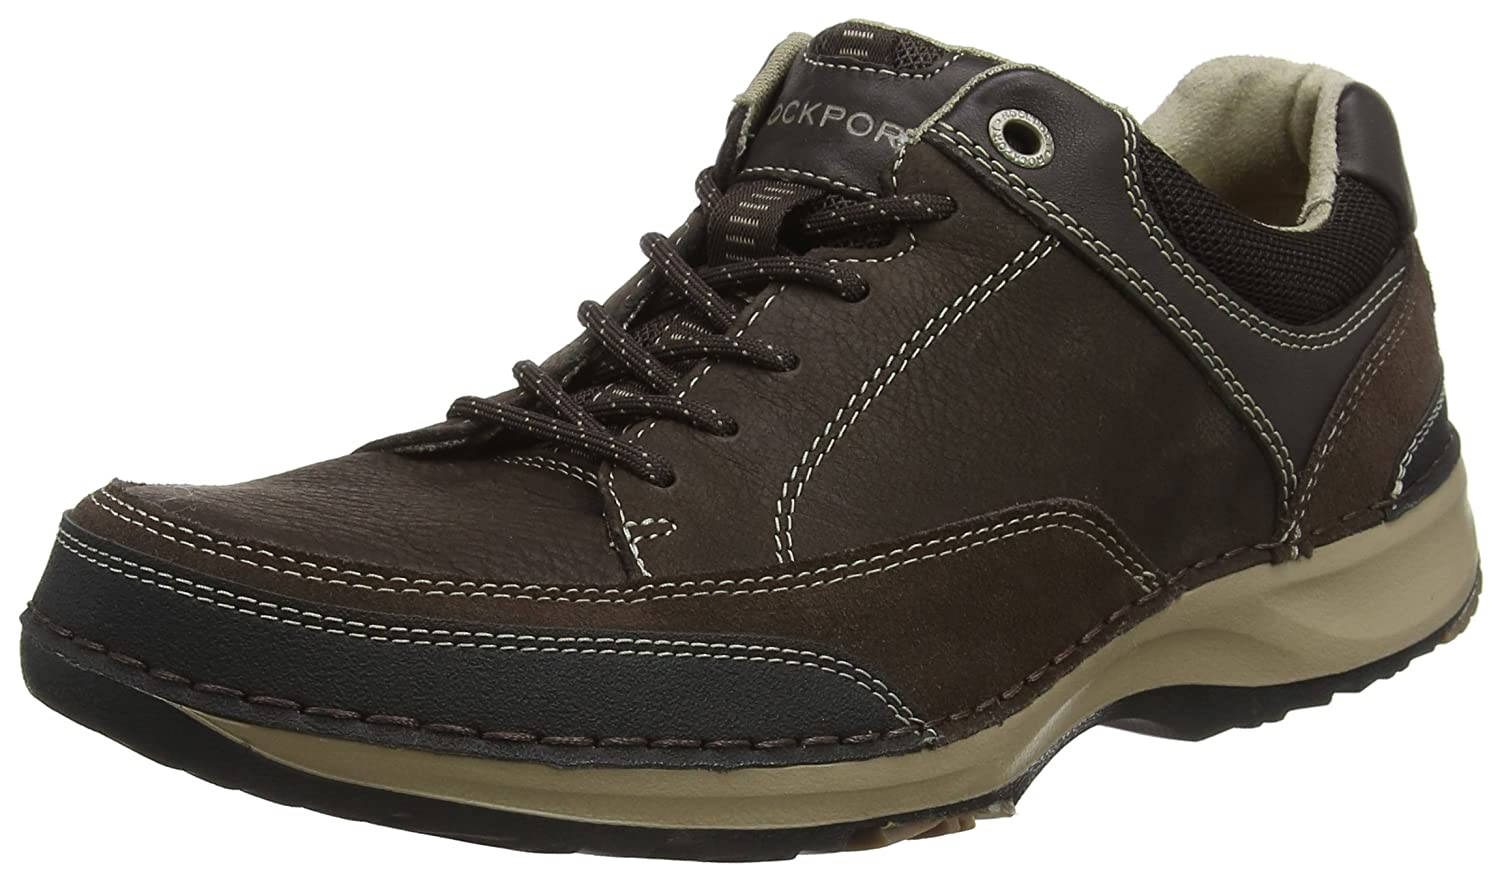 TALLA 40.5 EU. Rockport Rockstyle Purposeorts Lite Five Lace Up, Zapatos de Cordones Derby para Hombre